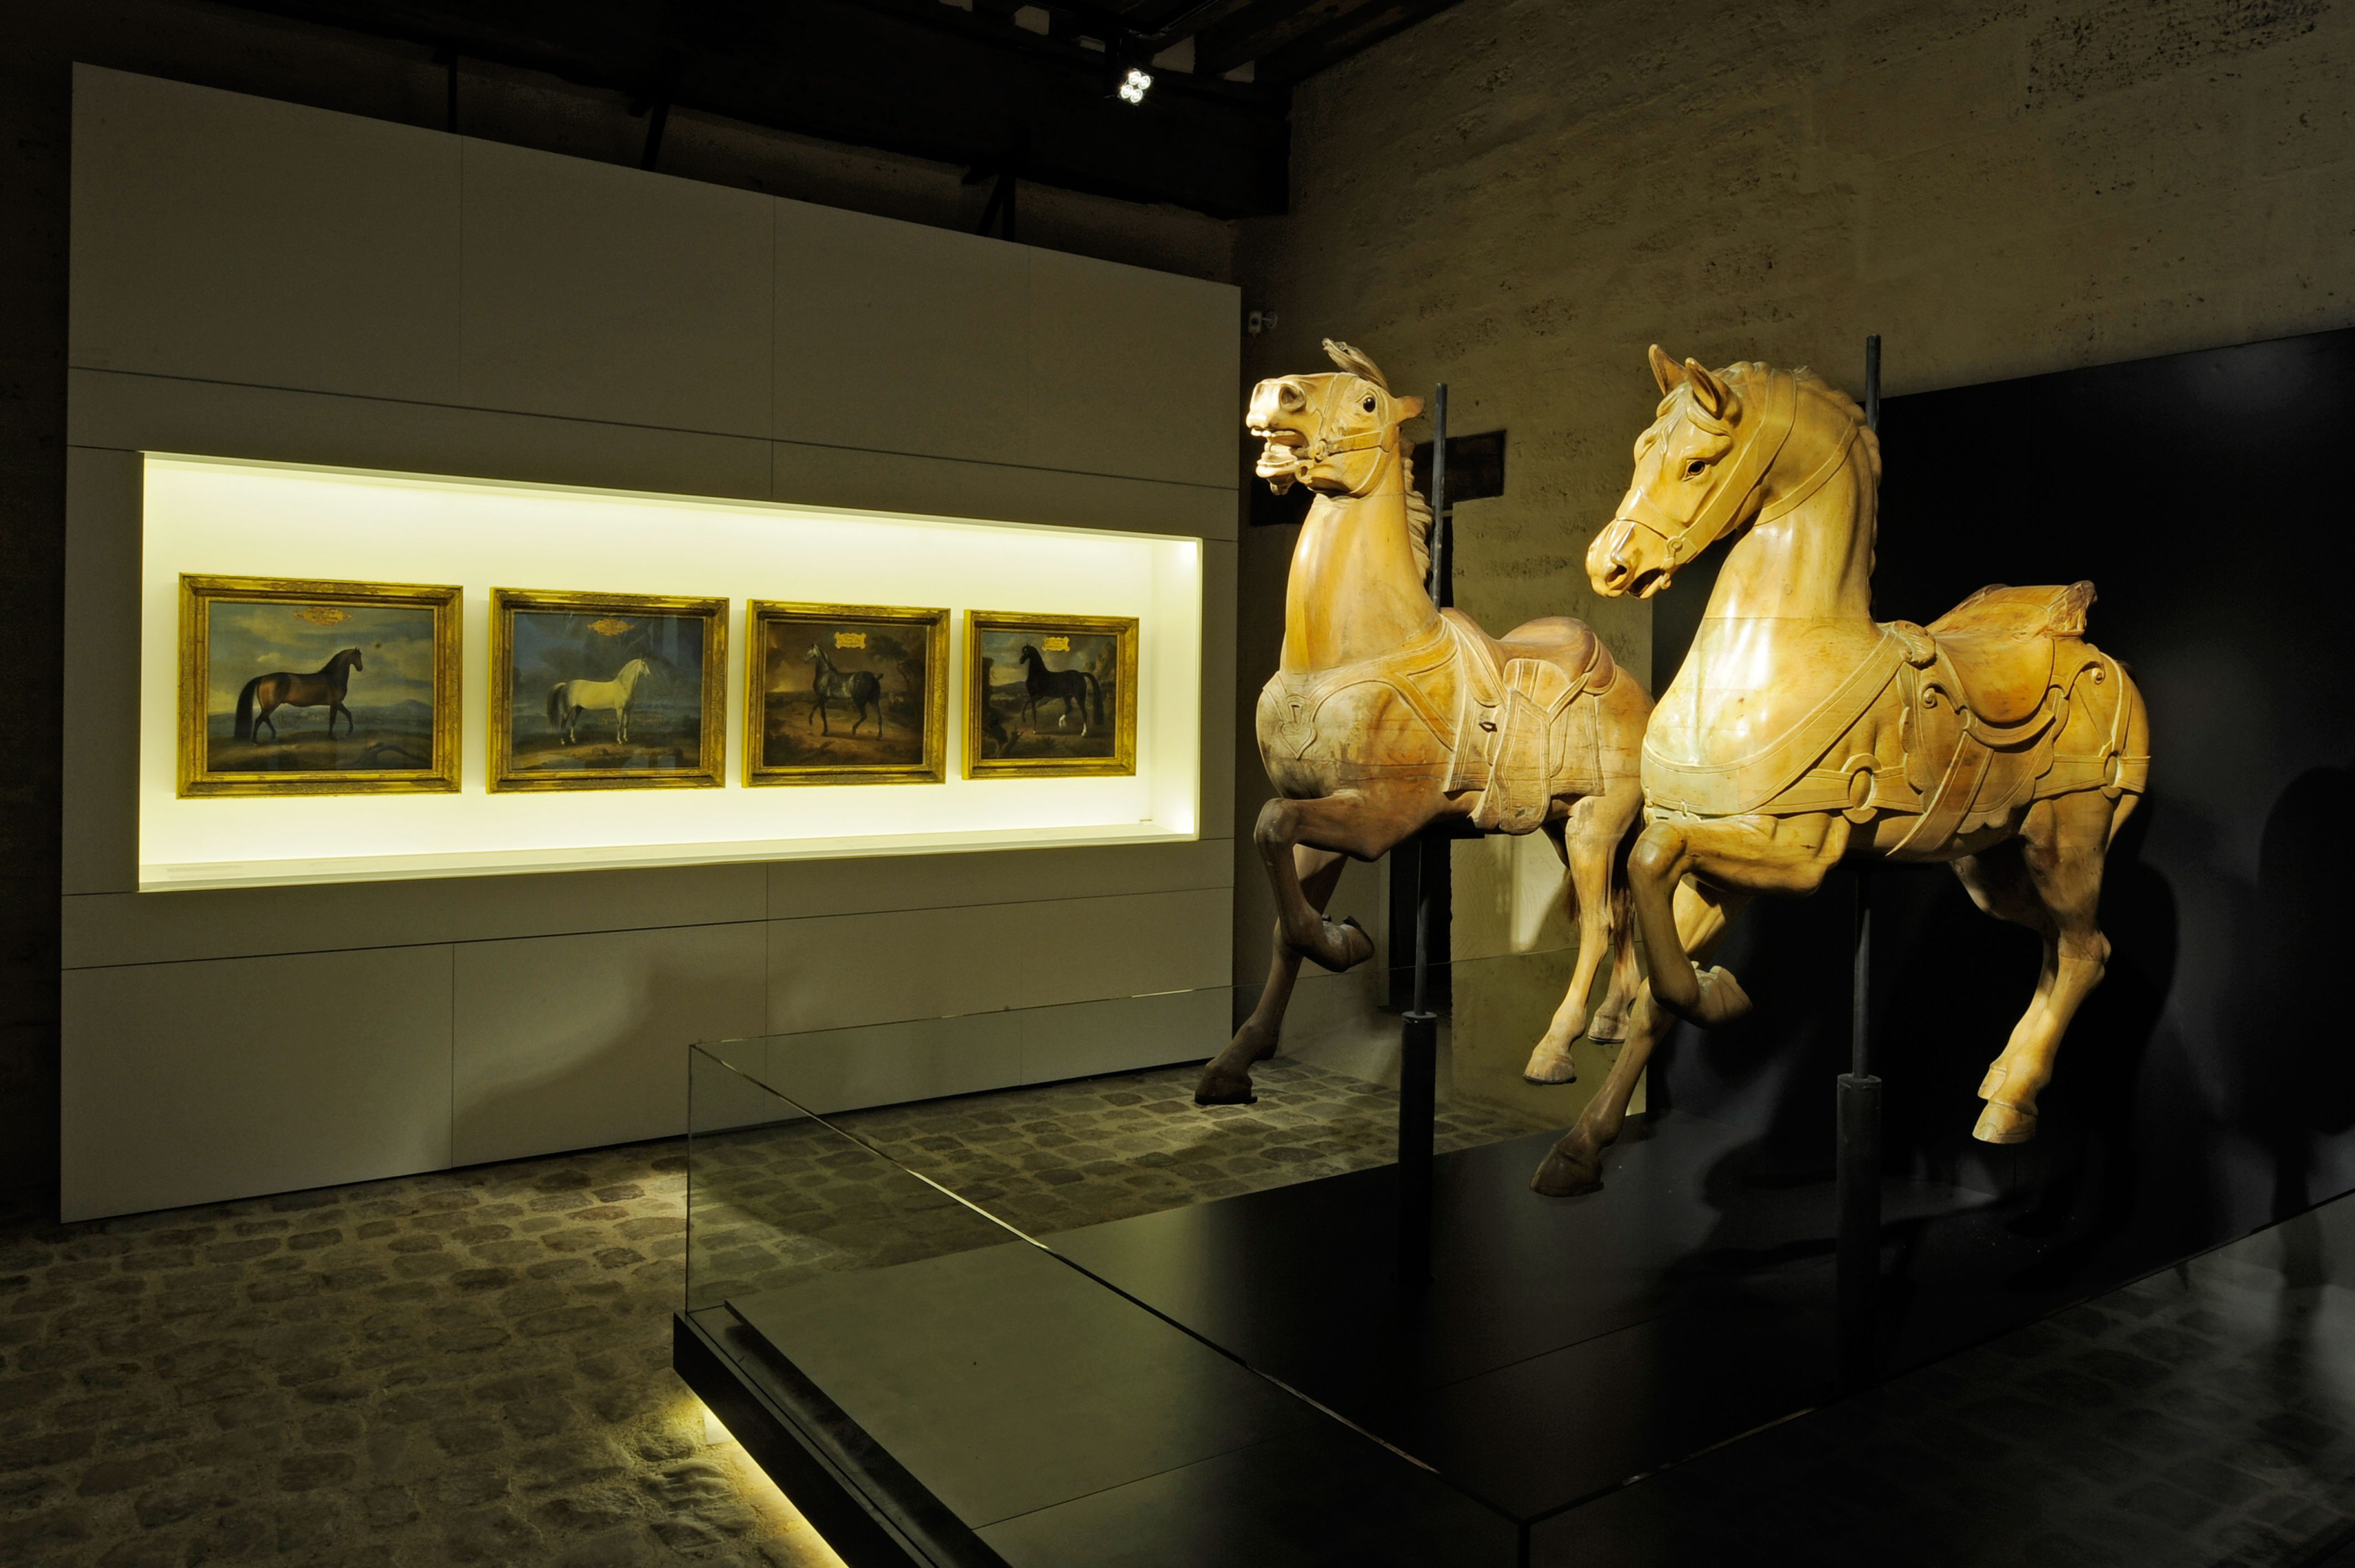 The museum of the Horse is open to all visitors, experts and novices alike. Its resolutely contemporary museography, offering a large number of interactive resources, gives visitors a vision of the horse and its history that is both pedagogical and enjoyable.